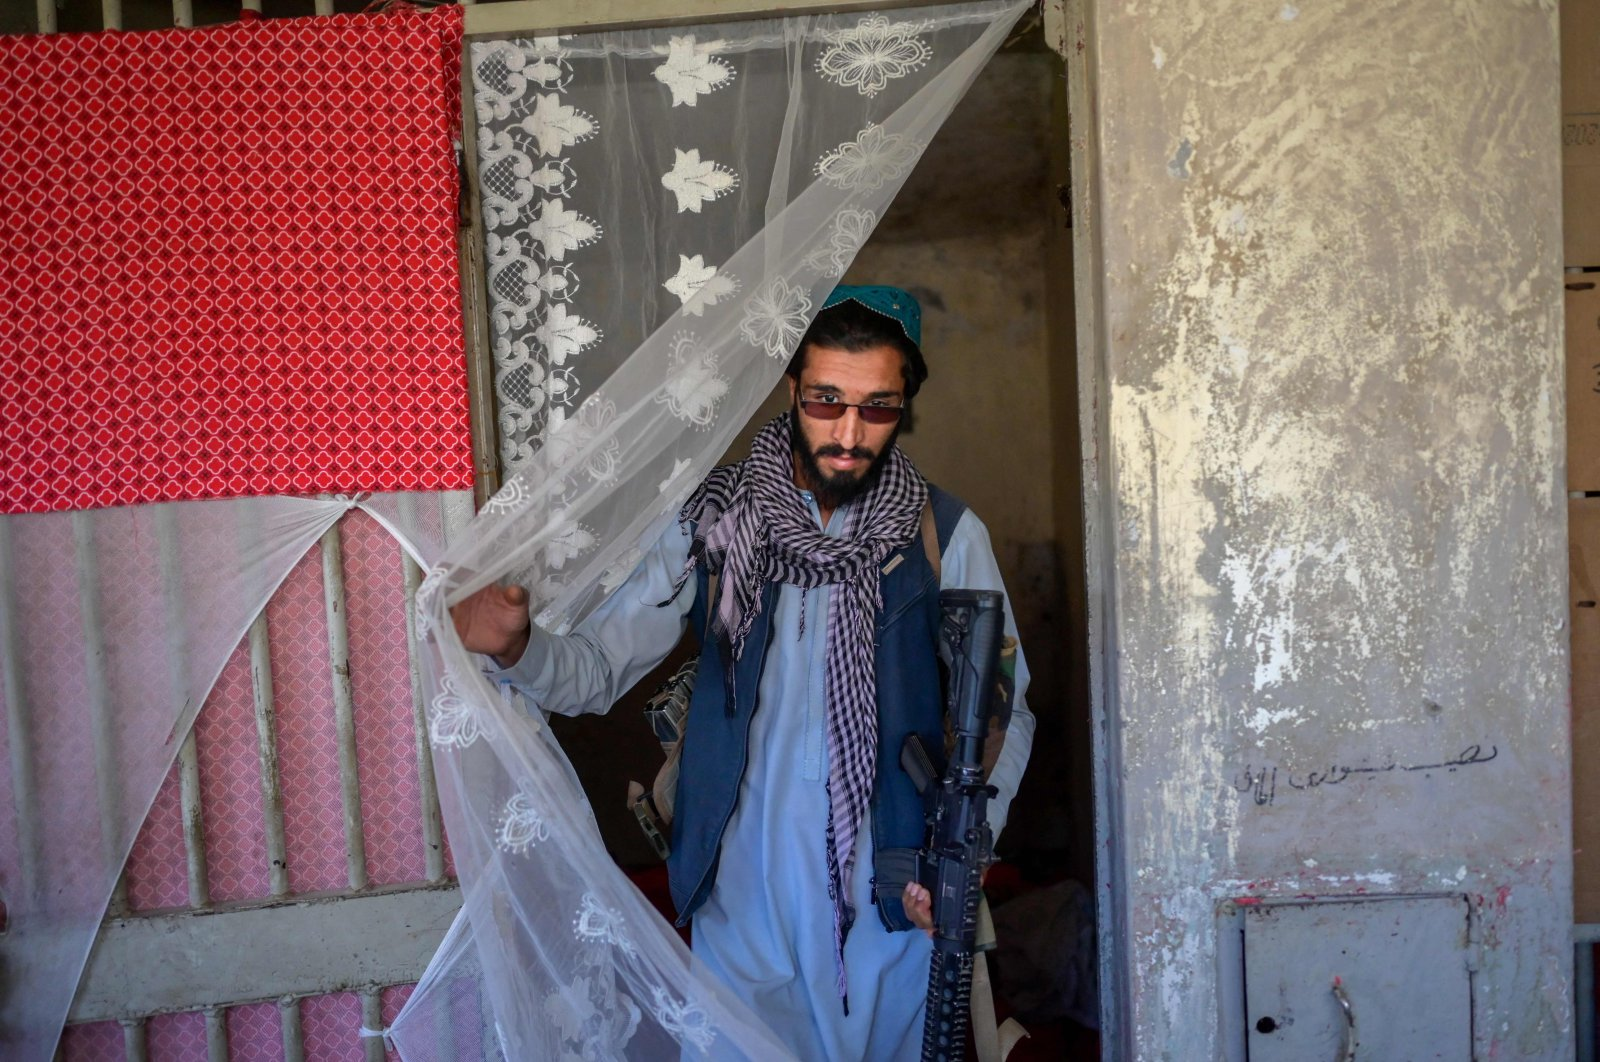 A member of the Taliban walks inside the Pul-e-Charkhi prison in Kabul, Afghanistan, Sept. 16, 2021. (AFP Photo)